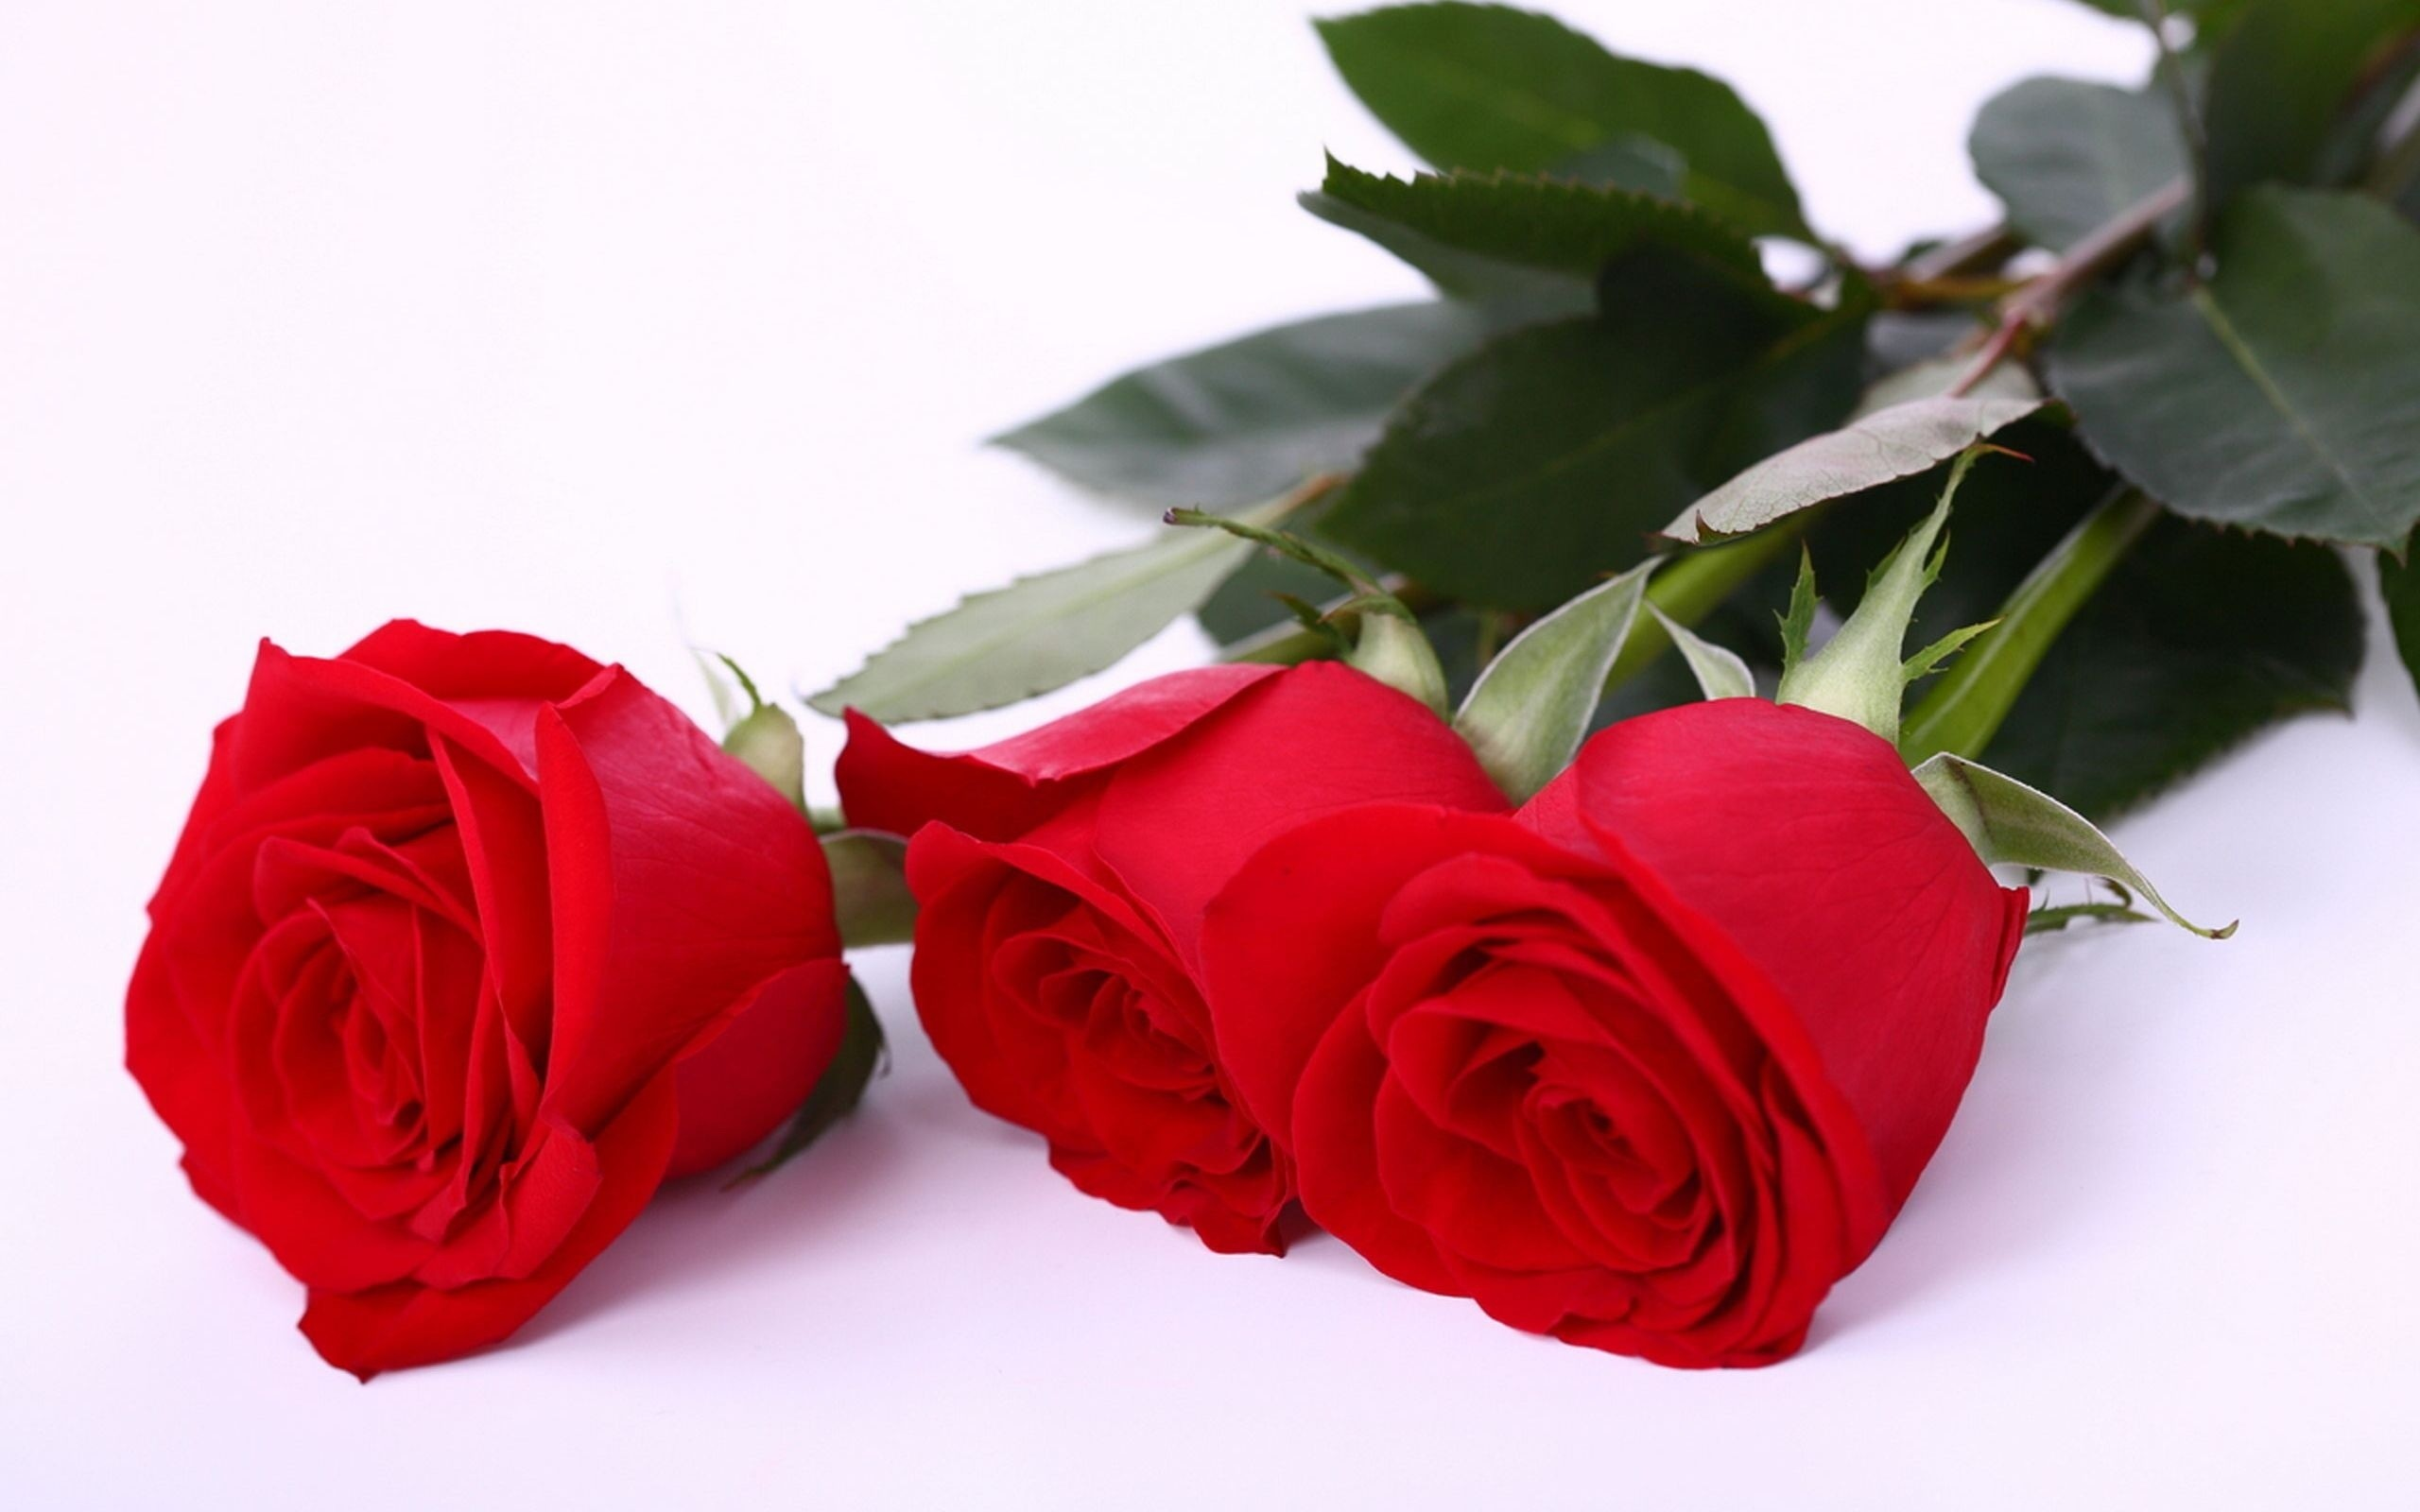 1900x2361 Tablet Awesome Earth Transparent Red Rose Tumblr Wallpapers Desktop Phone Single Png